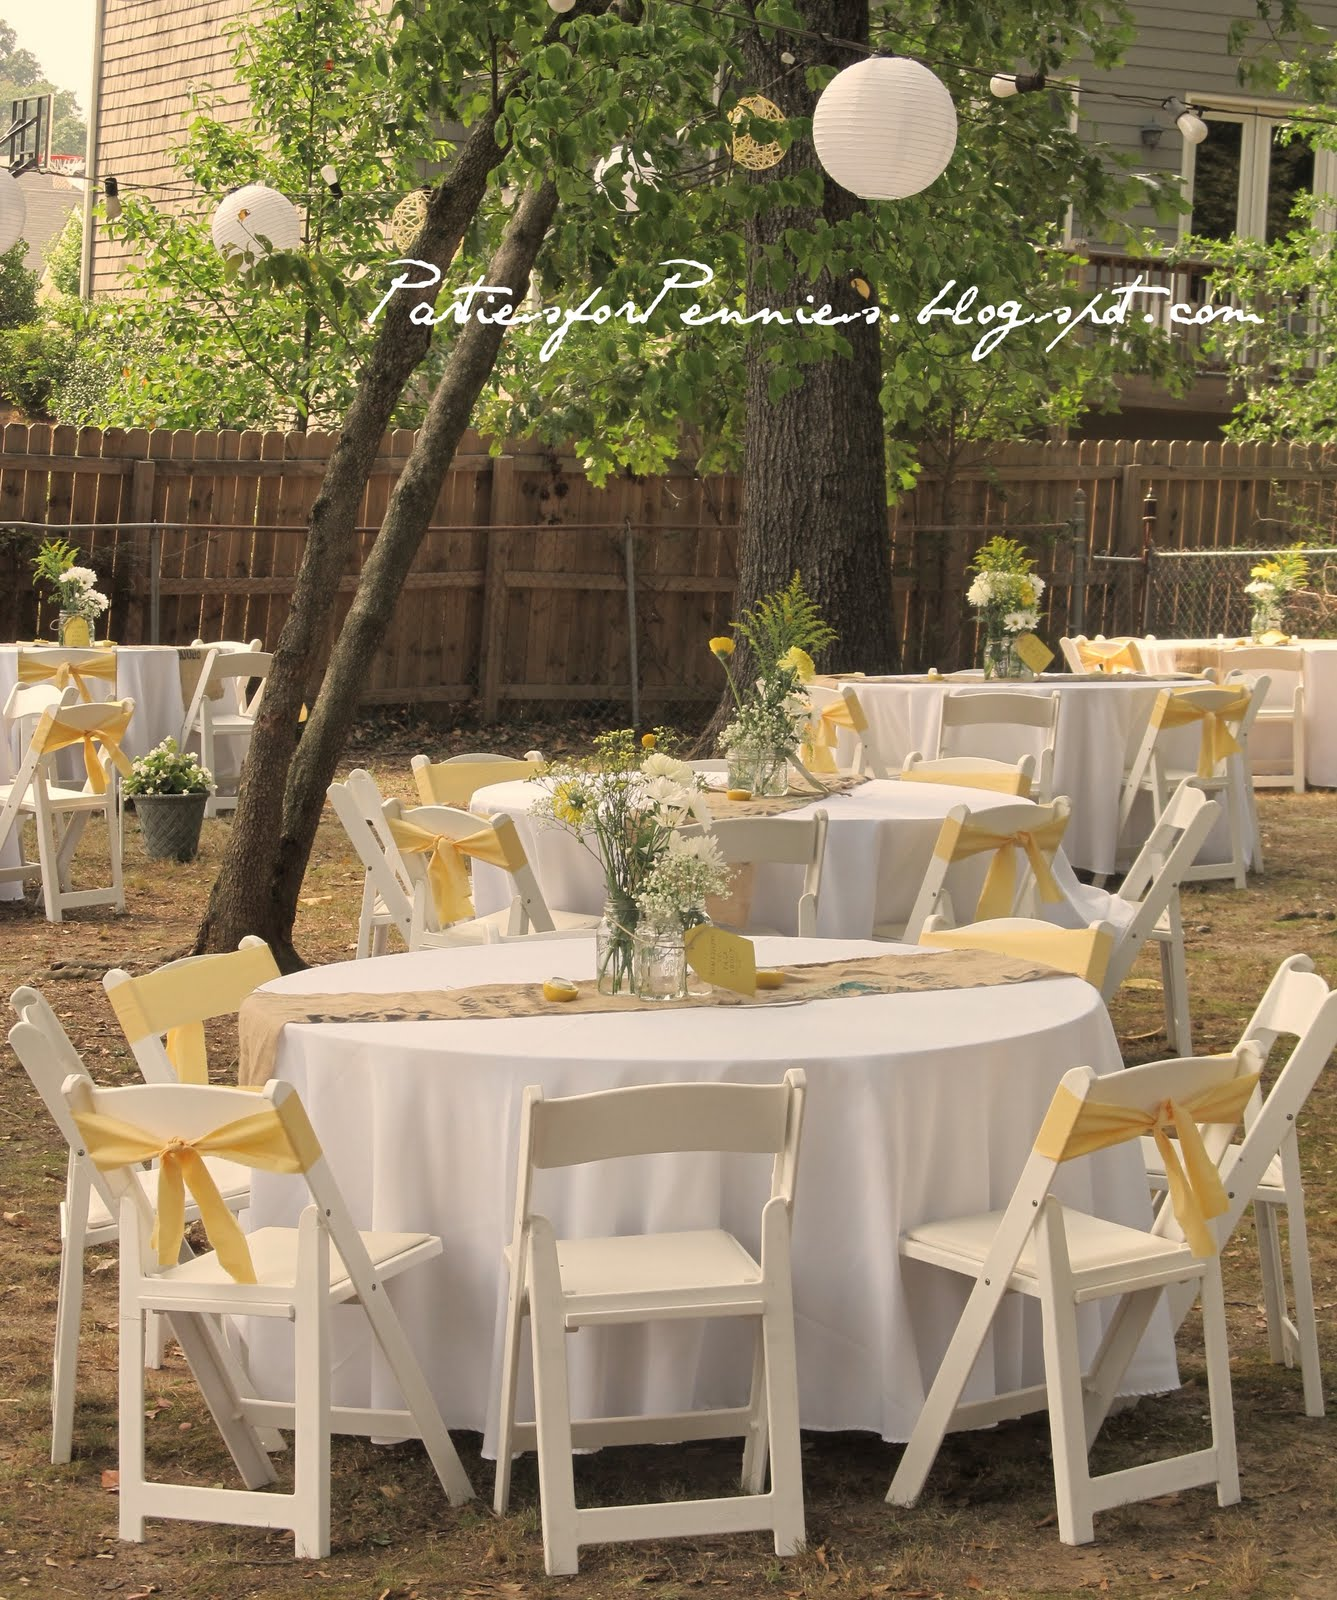 Inexpensive Wedding Ideas Reception Tables: Parties For Pennies: The BIGGEST Party Of My Life